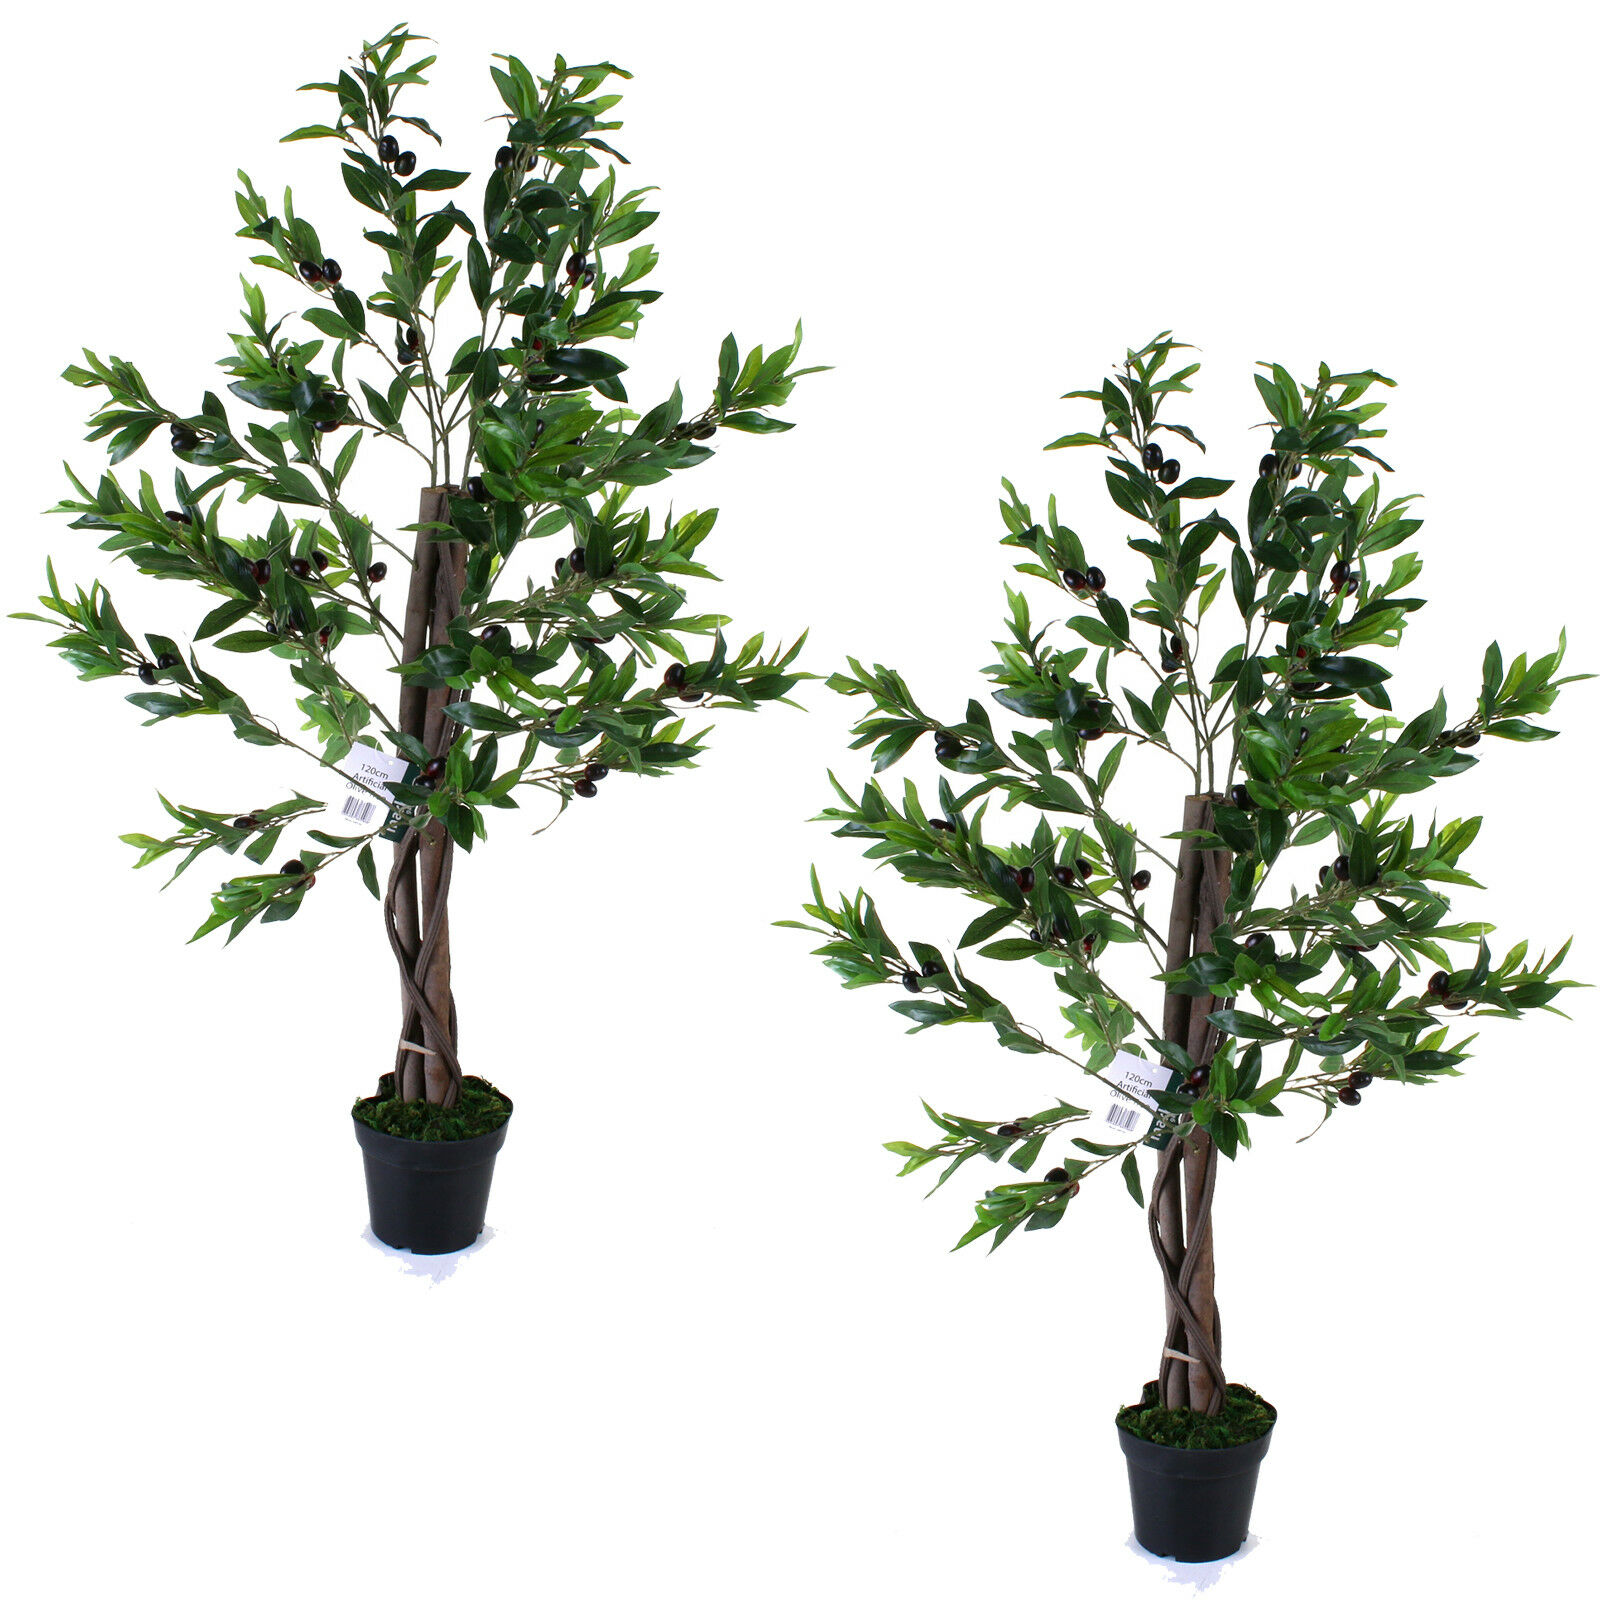 ARTIFICIAL OLIVE TREE PLANT HOME OFFICE DECOR TOPIARY REALISTIC WEDDING120CM